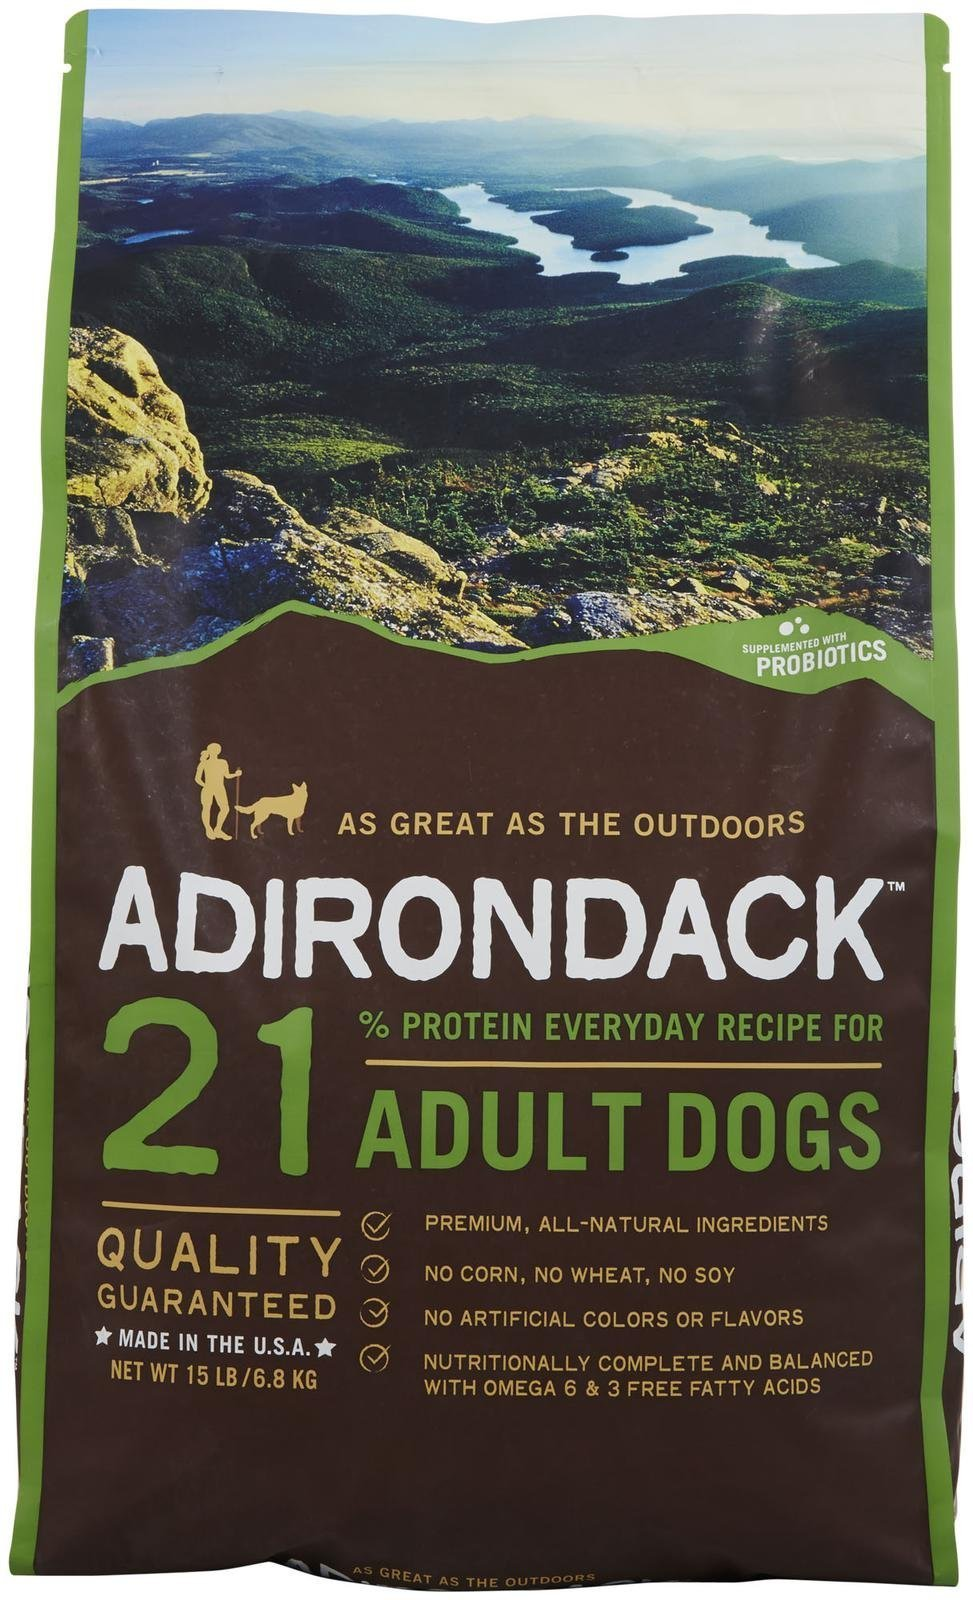 Adirondack Pet Food 22452 21% Protein Everyday Recipe For Adult Dogs, 15Lb. by Blackwood Pet Food